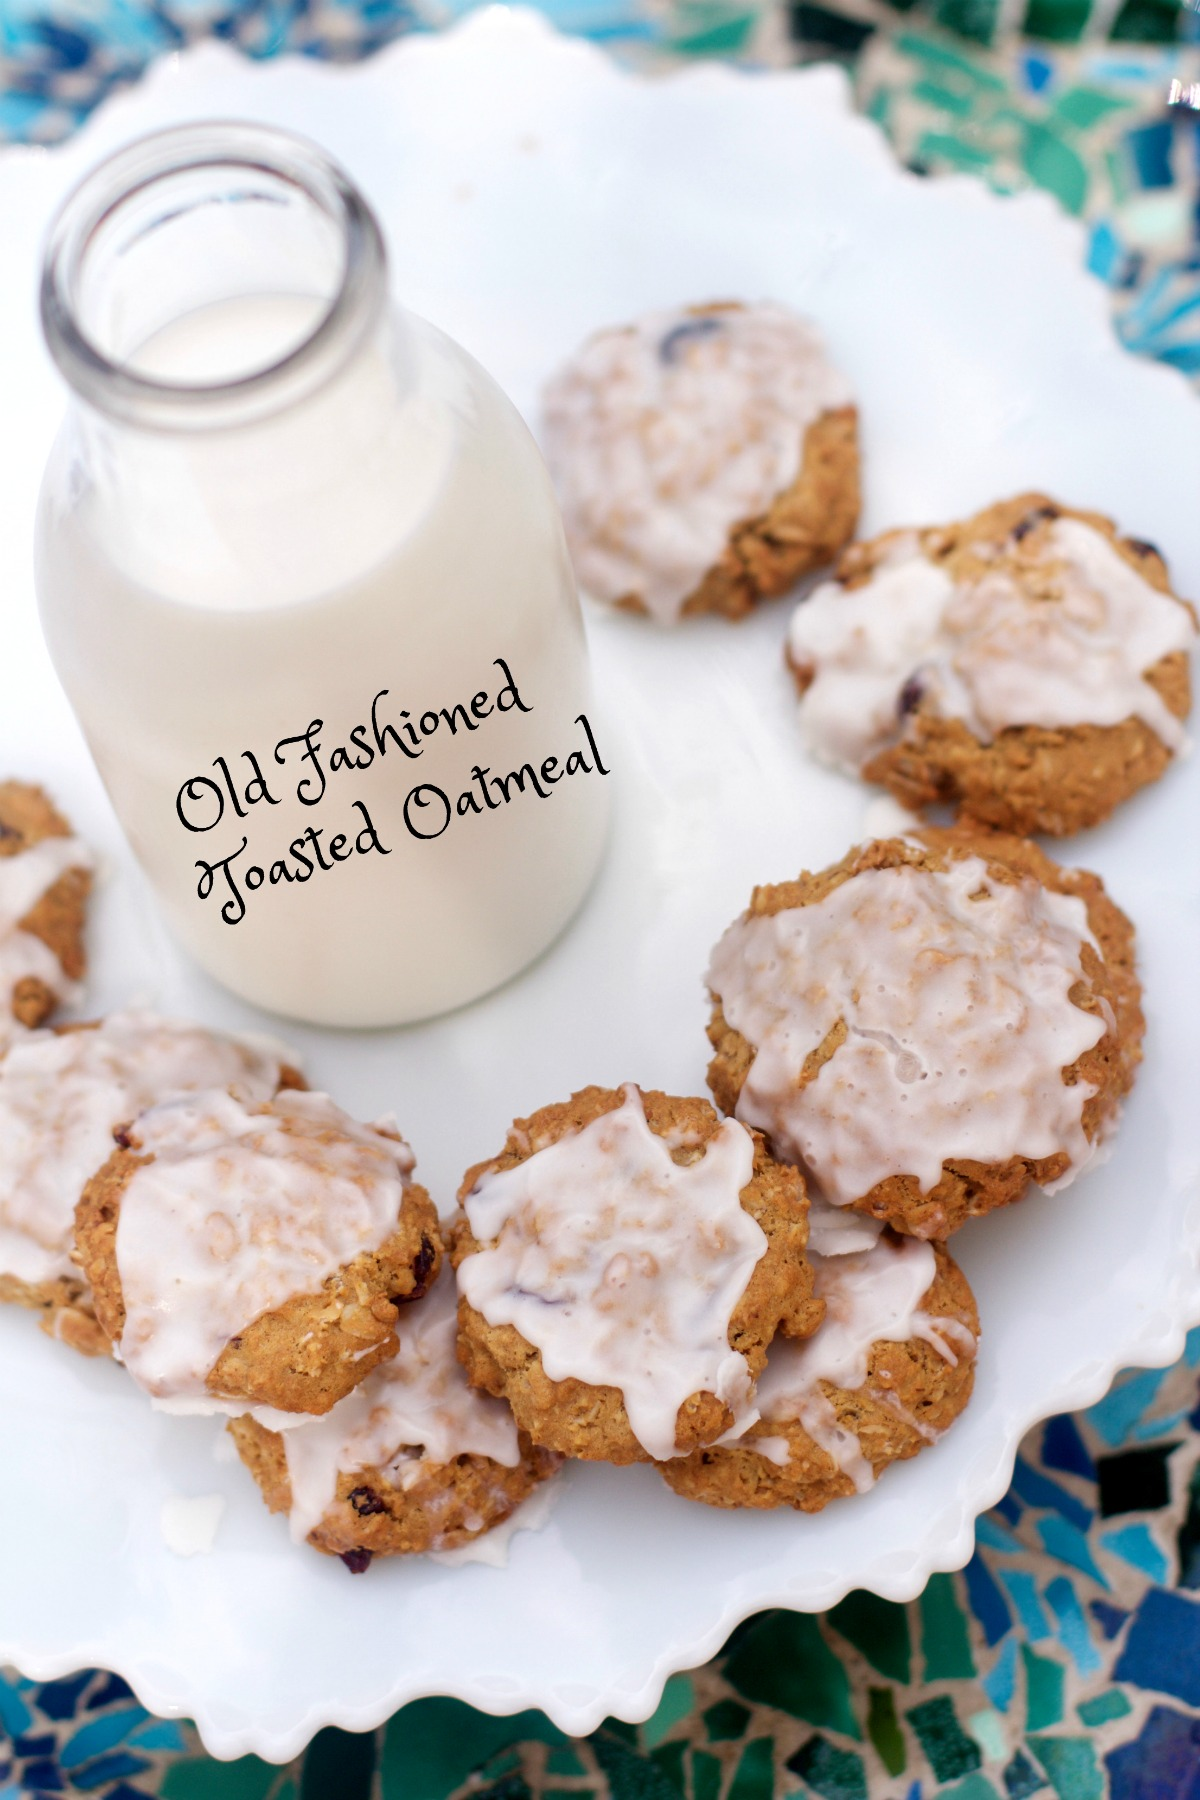 Gluten Free Oatmeal Cookies Recipe from Spinach Tiger